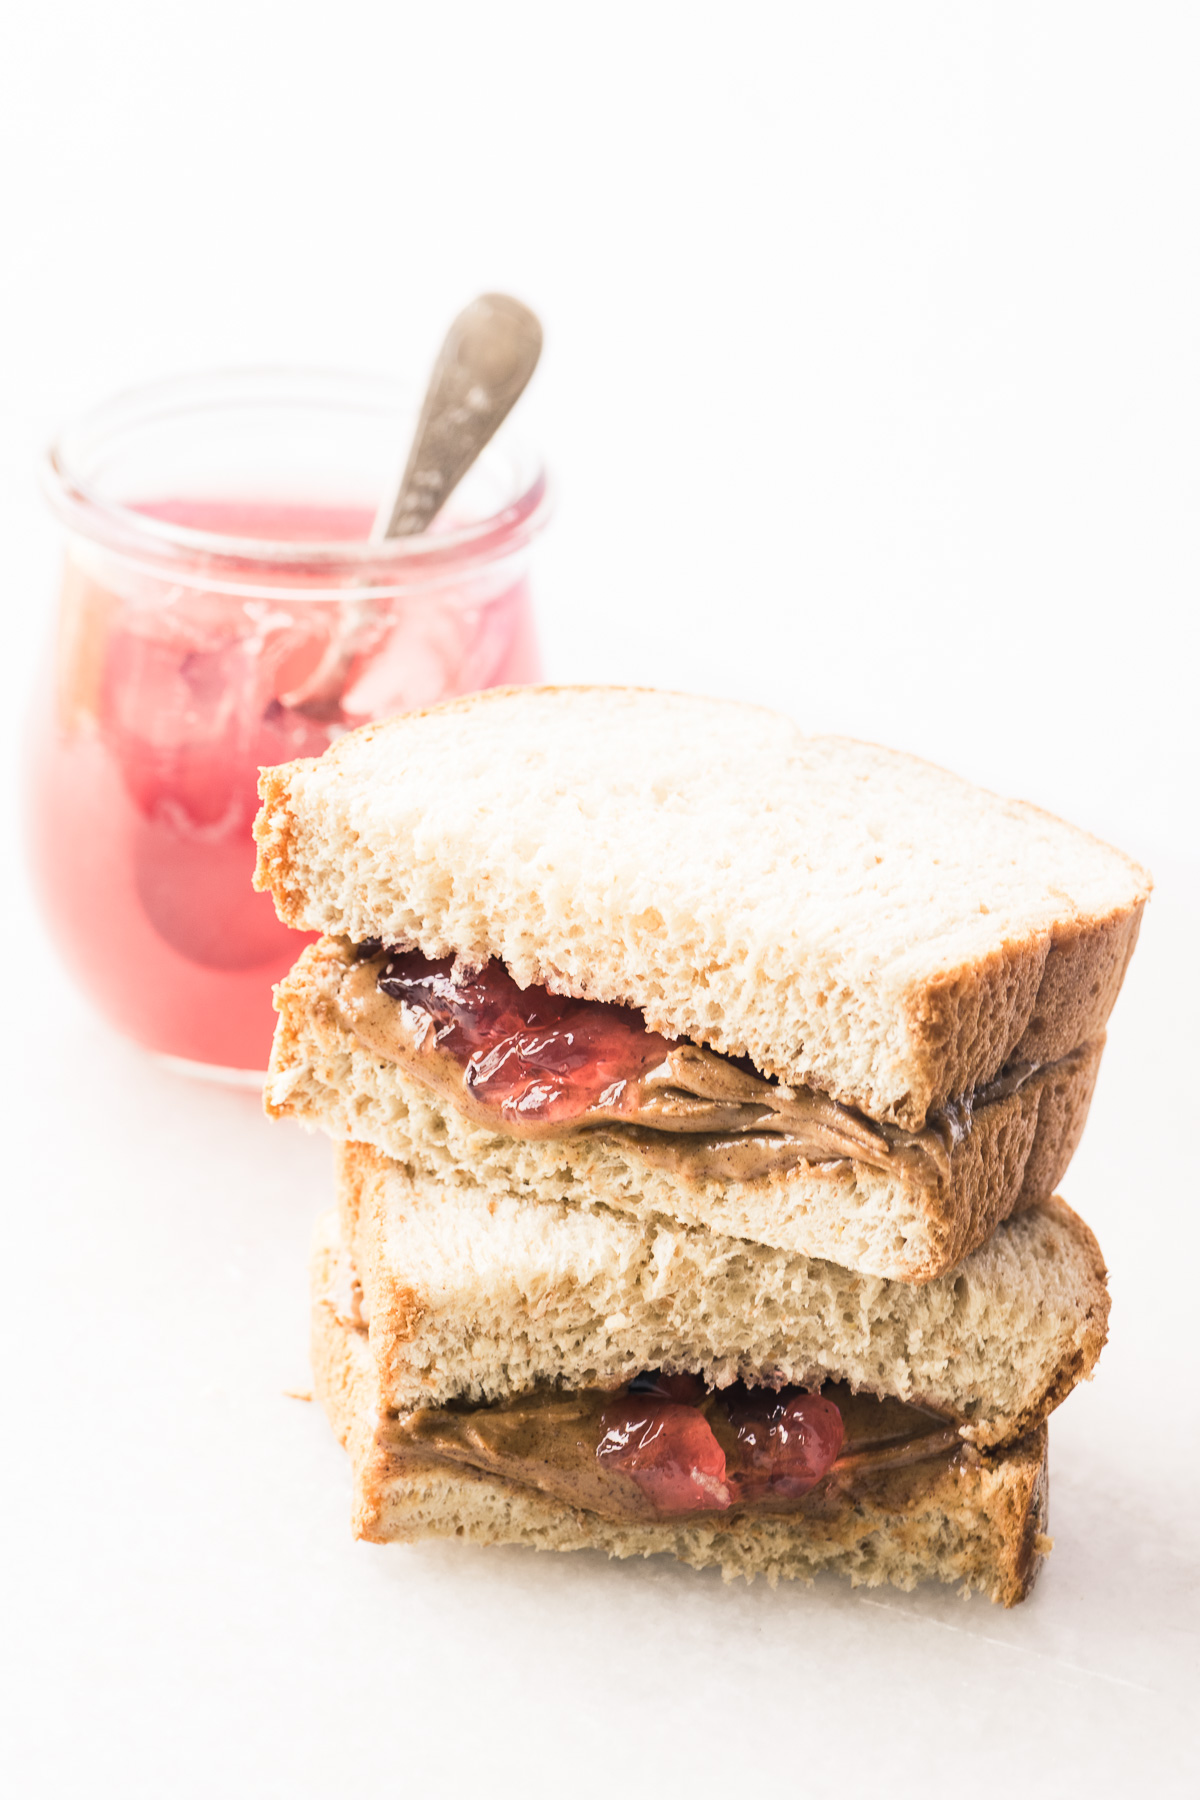 almond butter rhubarb jelly sandwich